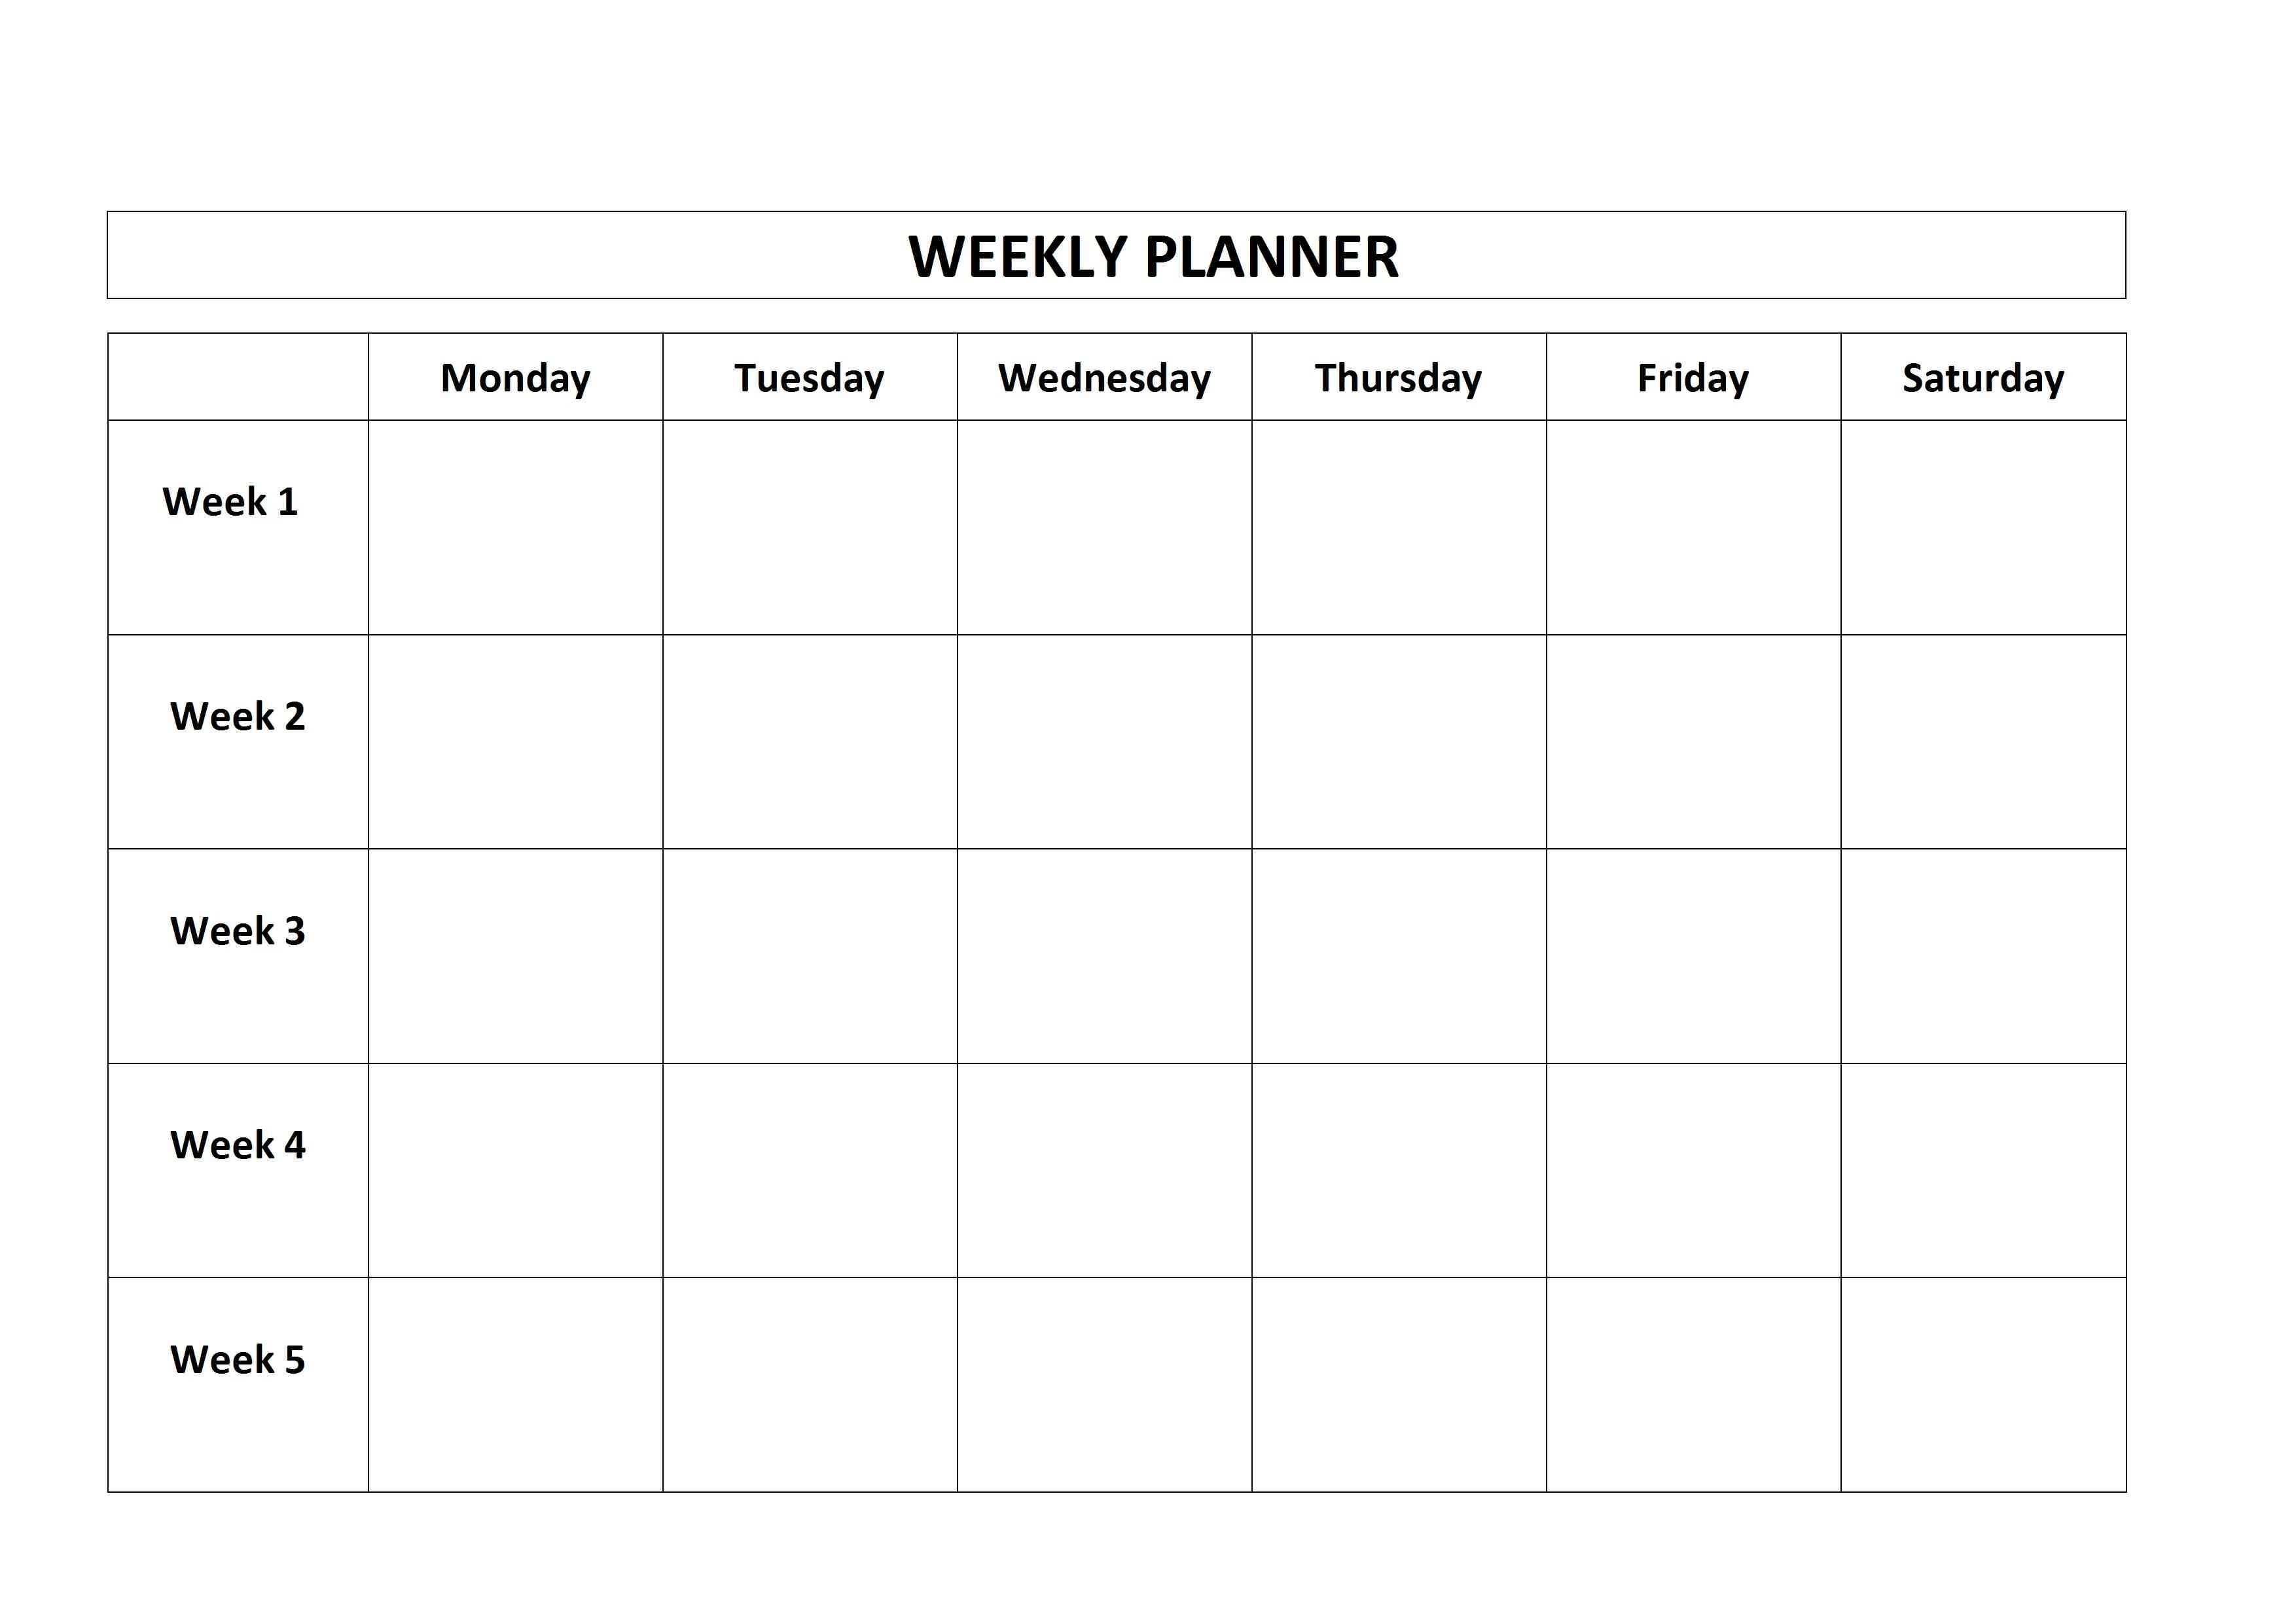 Free Printable 5 Day Monthly Calendar Template 2016 In   Thekpark with regard to 5 Day Calendar Template Free